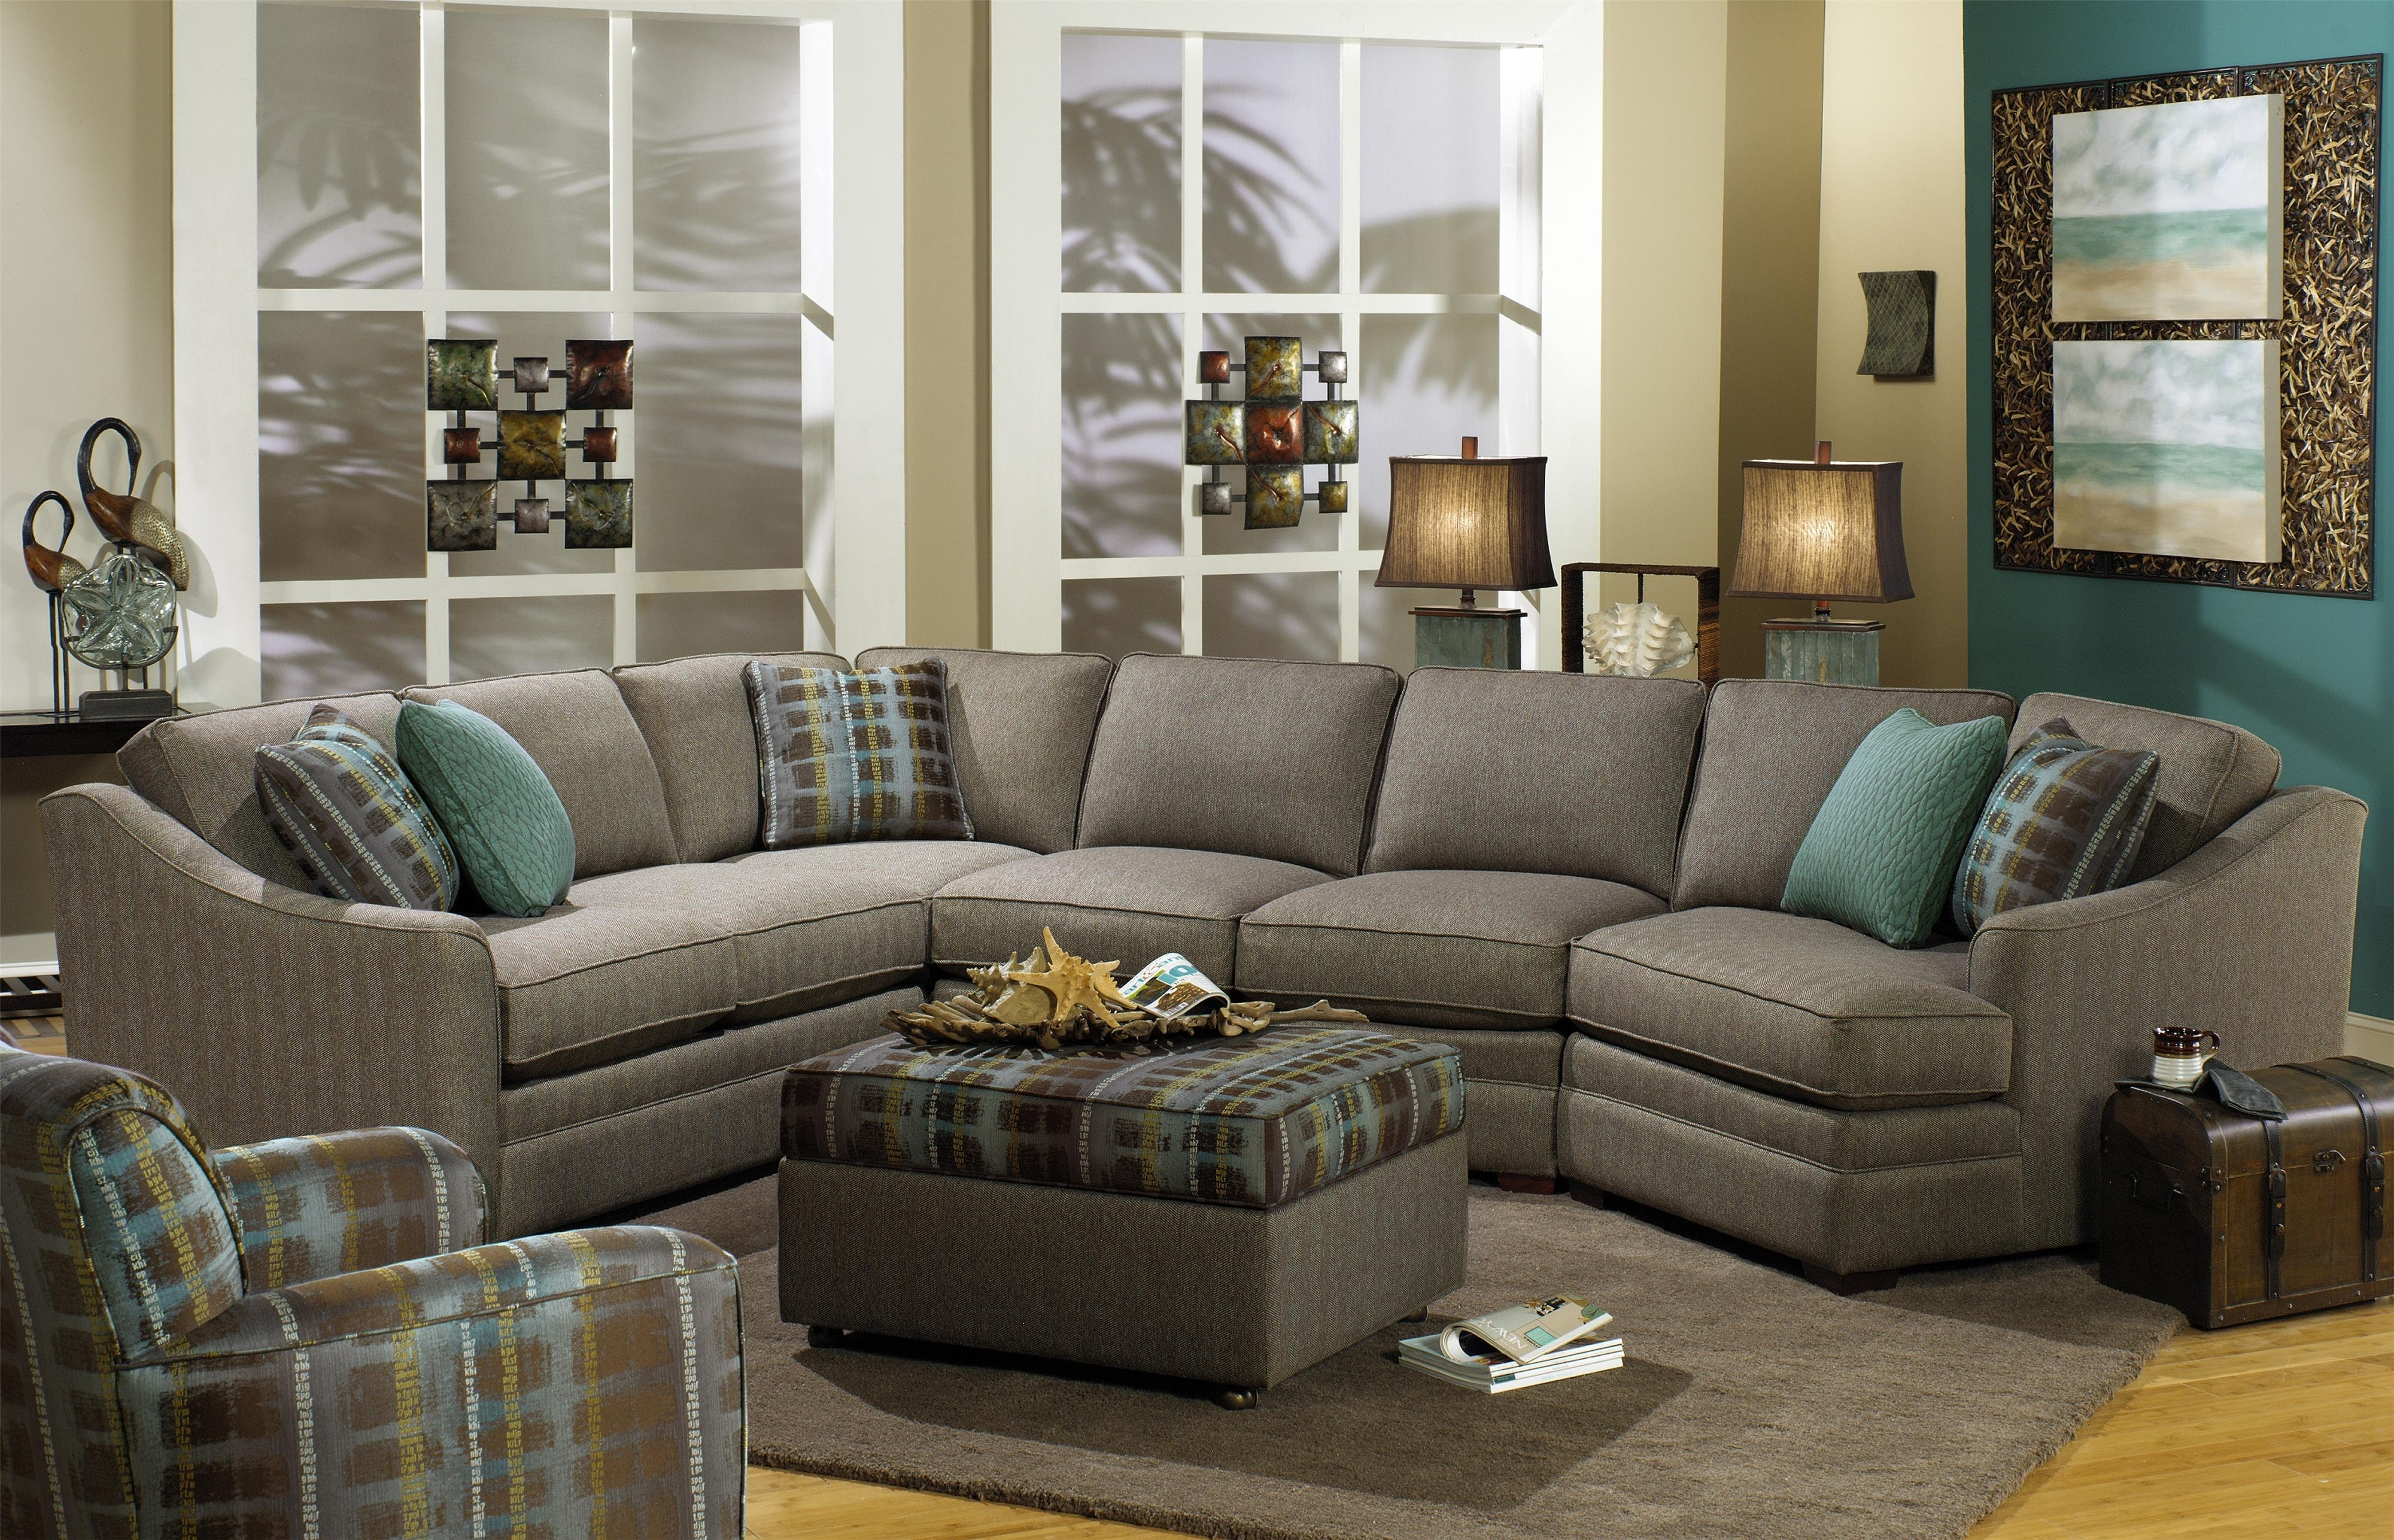 B>Customizable</b> 3 Piece Sectional With Raf Cuddlercraftmaster With Meyer 3 Piece Sectionals With Raf Chaise (View 23 of 25)